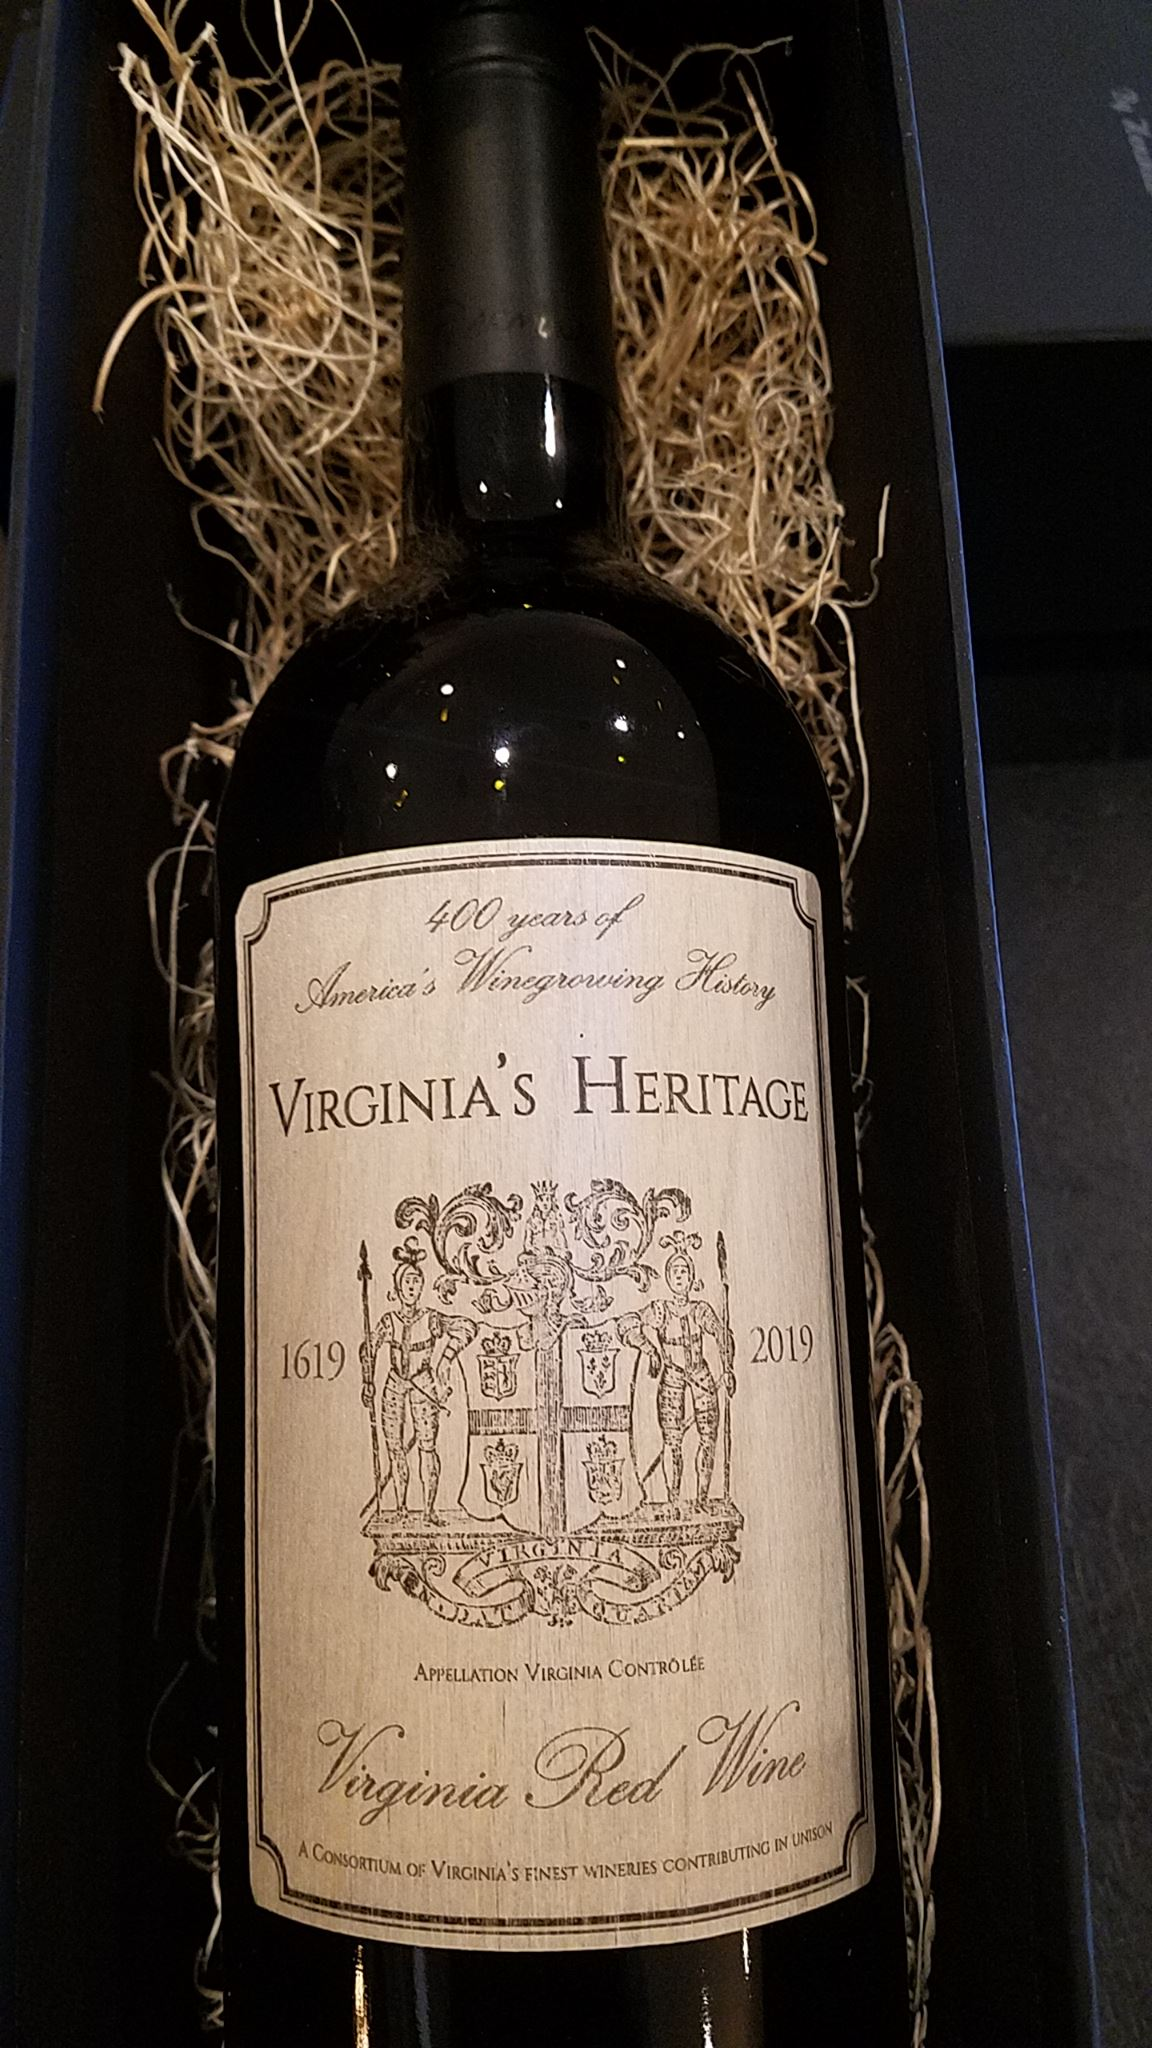 Release of Virginia's Heritage